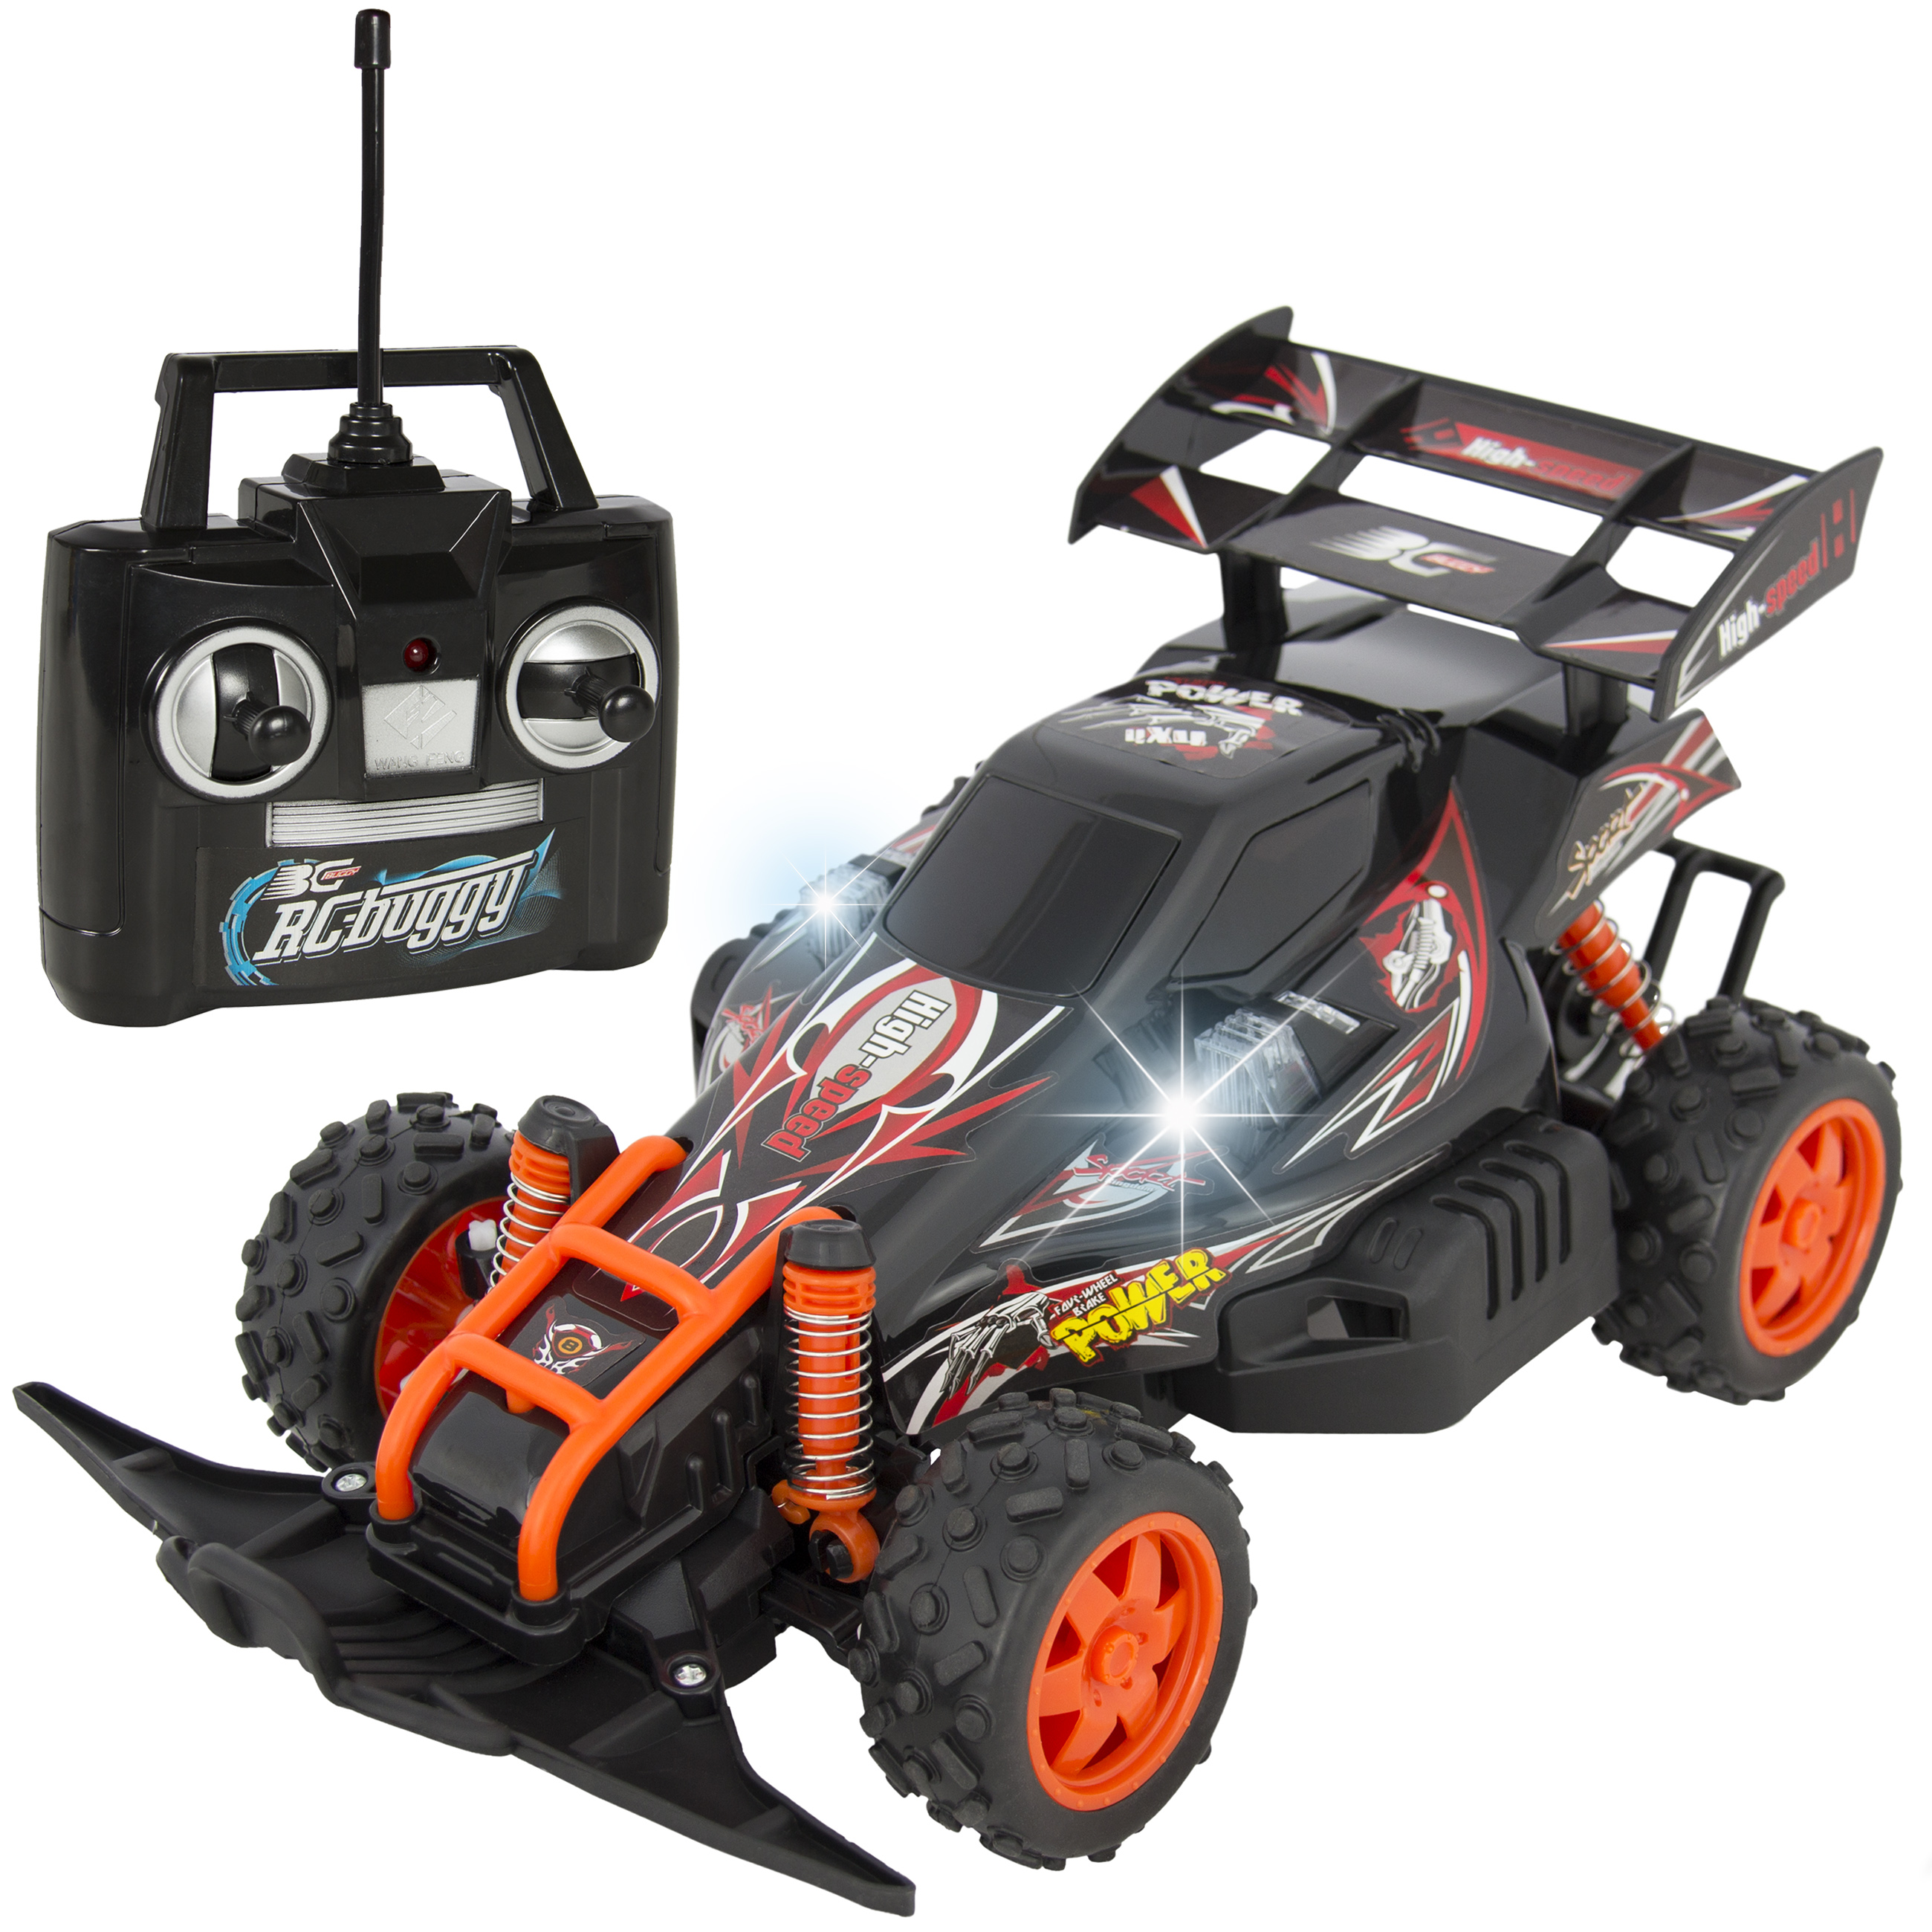 RC Remote Control Super Fast Racing Car Buggy Vehicle Battery & Charger Included